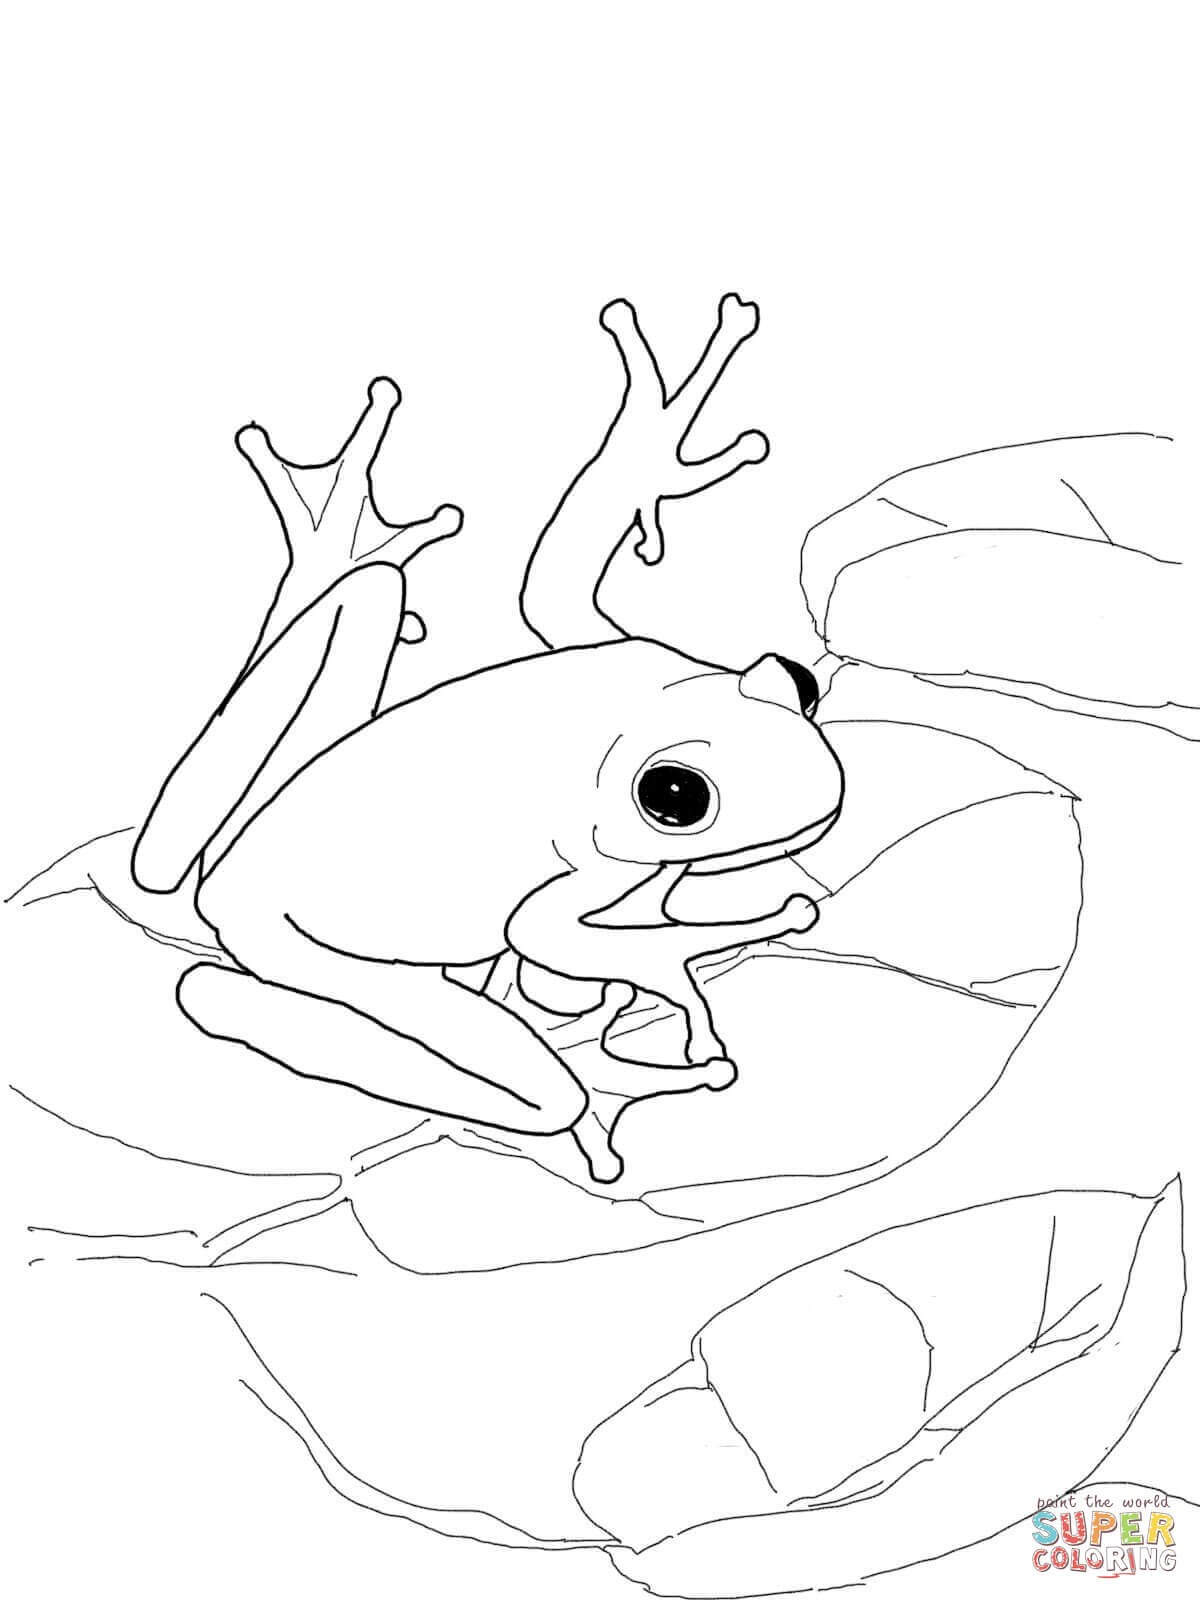 coqui coloring page the best free coqui coloring page images download from 27 coloring page coqui